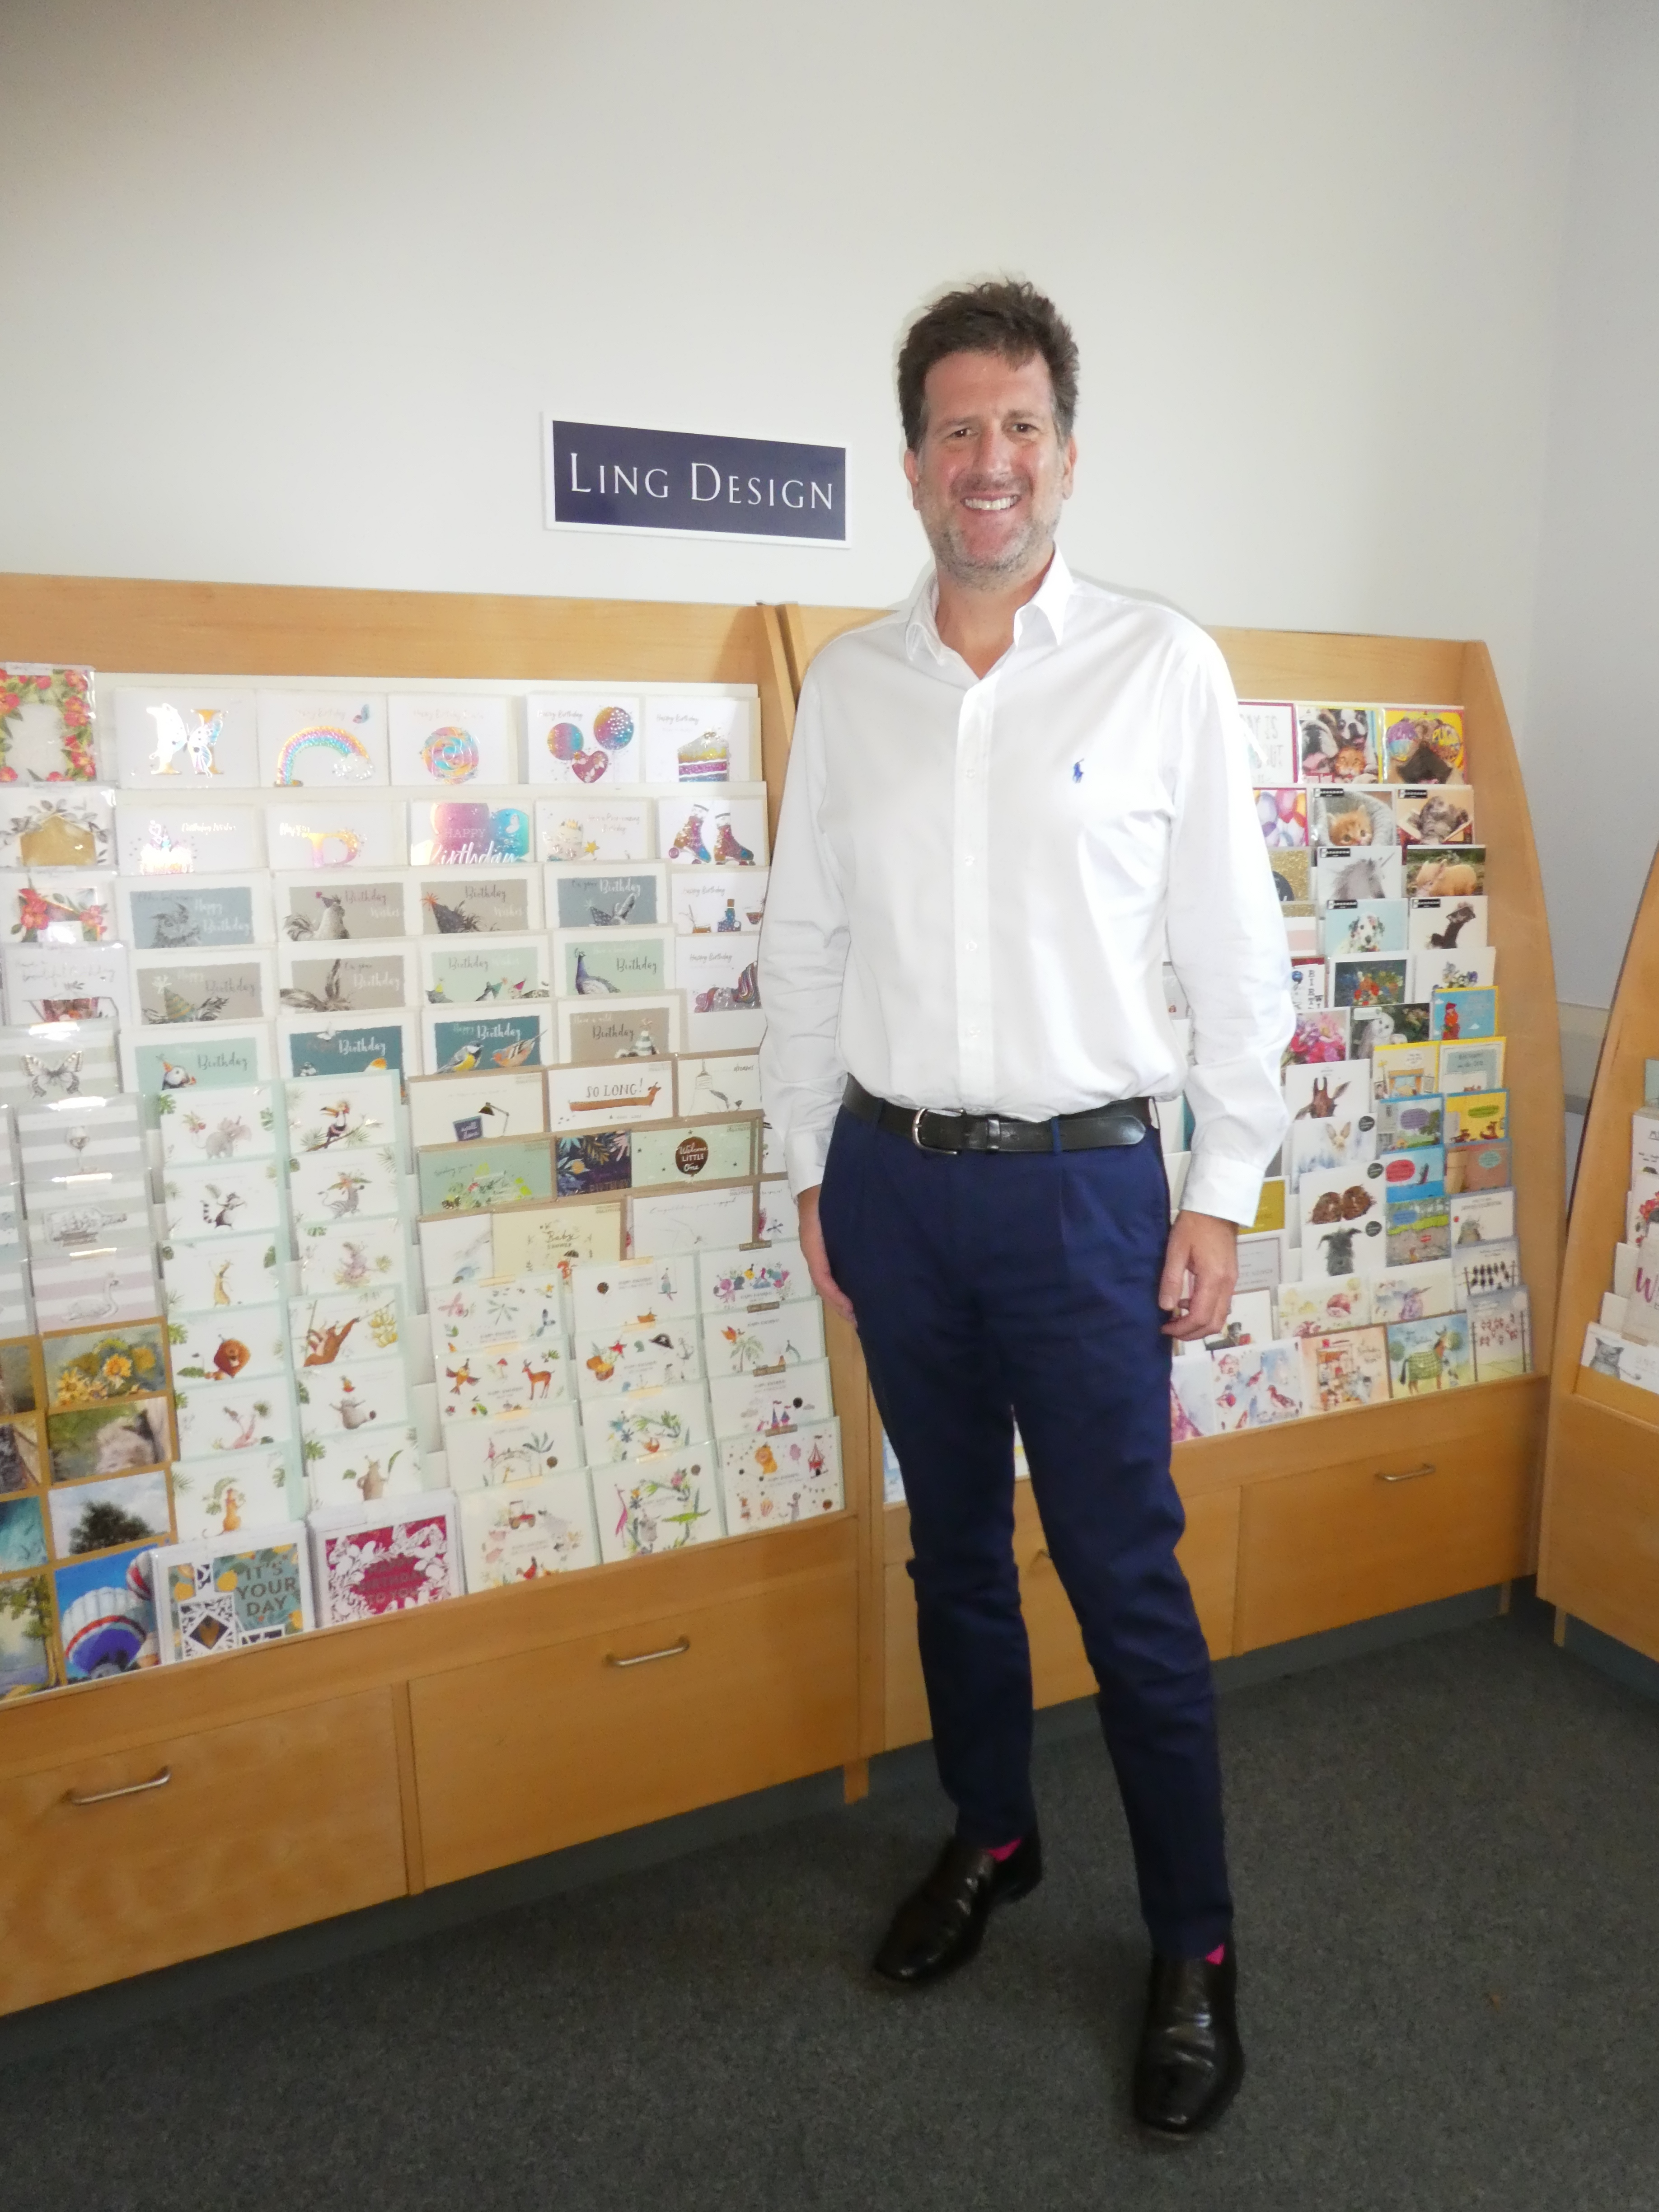 Above: David Byk, ceo of Ling felt he had to protect his established brand.